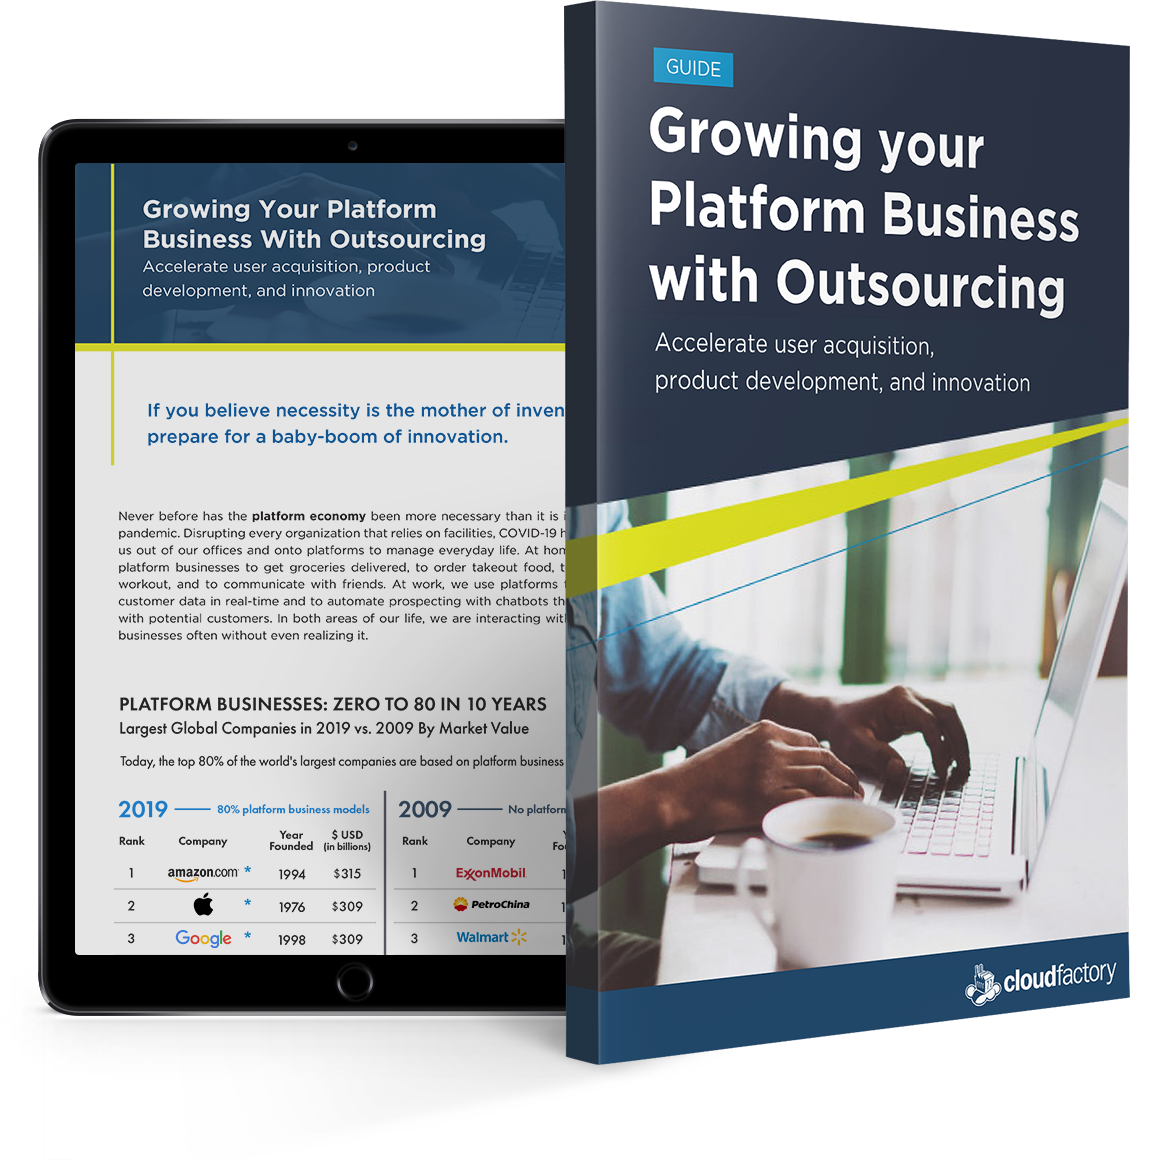 growing-platform-business-with-outsourcing